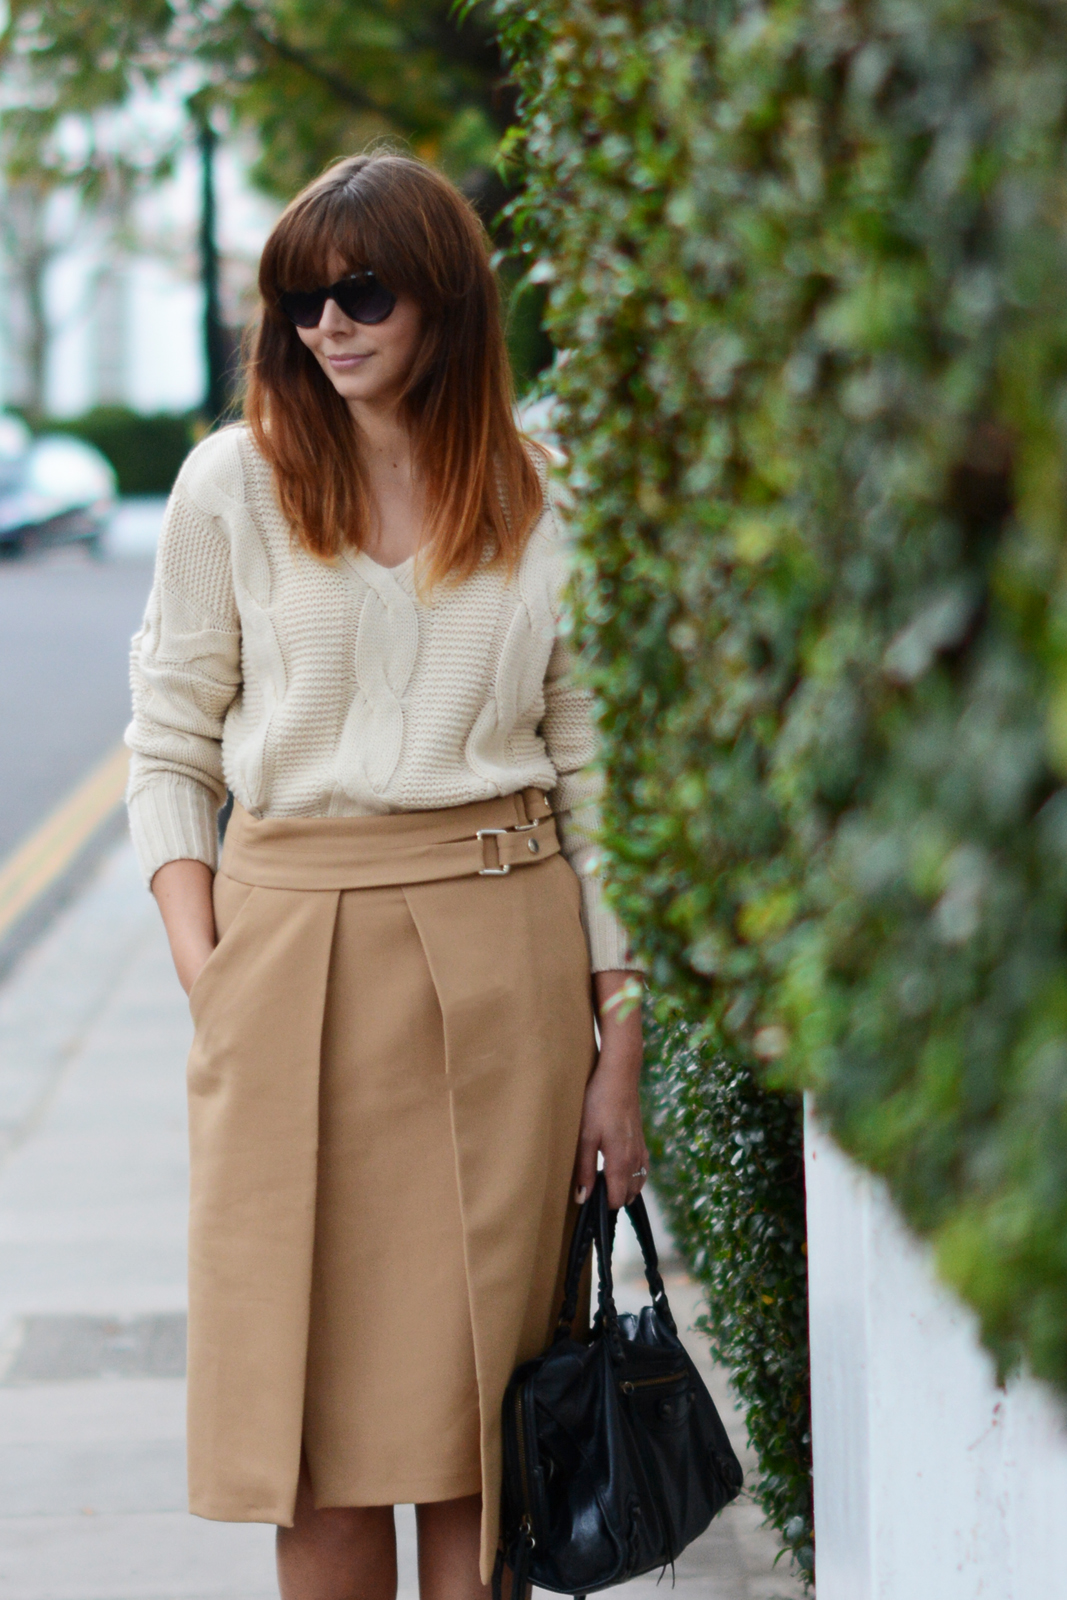 EJSTYLE - OOTD Zara Camel wrap skirt with buckles, chunky cream knitted sweater jumper, Balenciaga motorcycle le dix bag, cat eye sunglasses